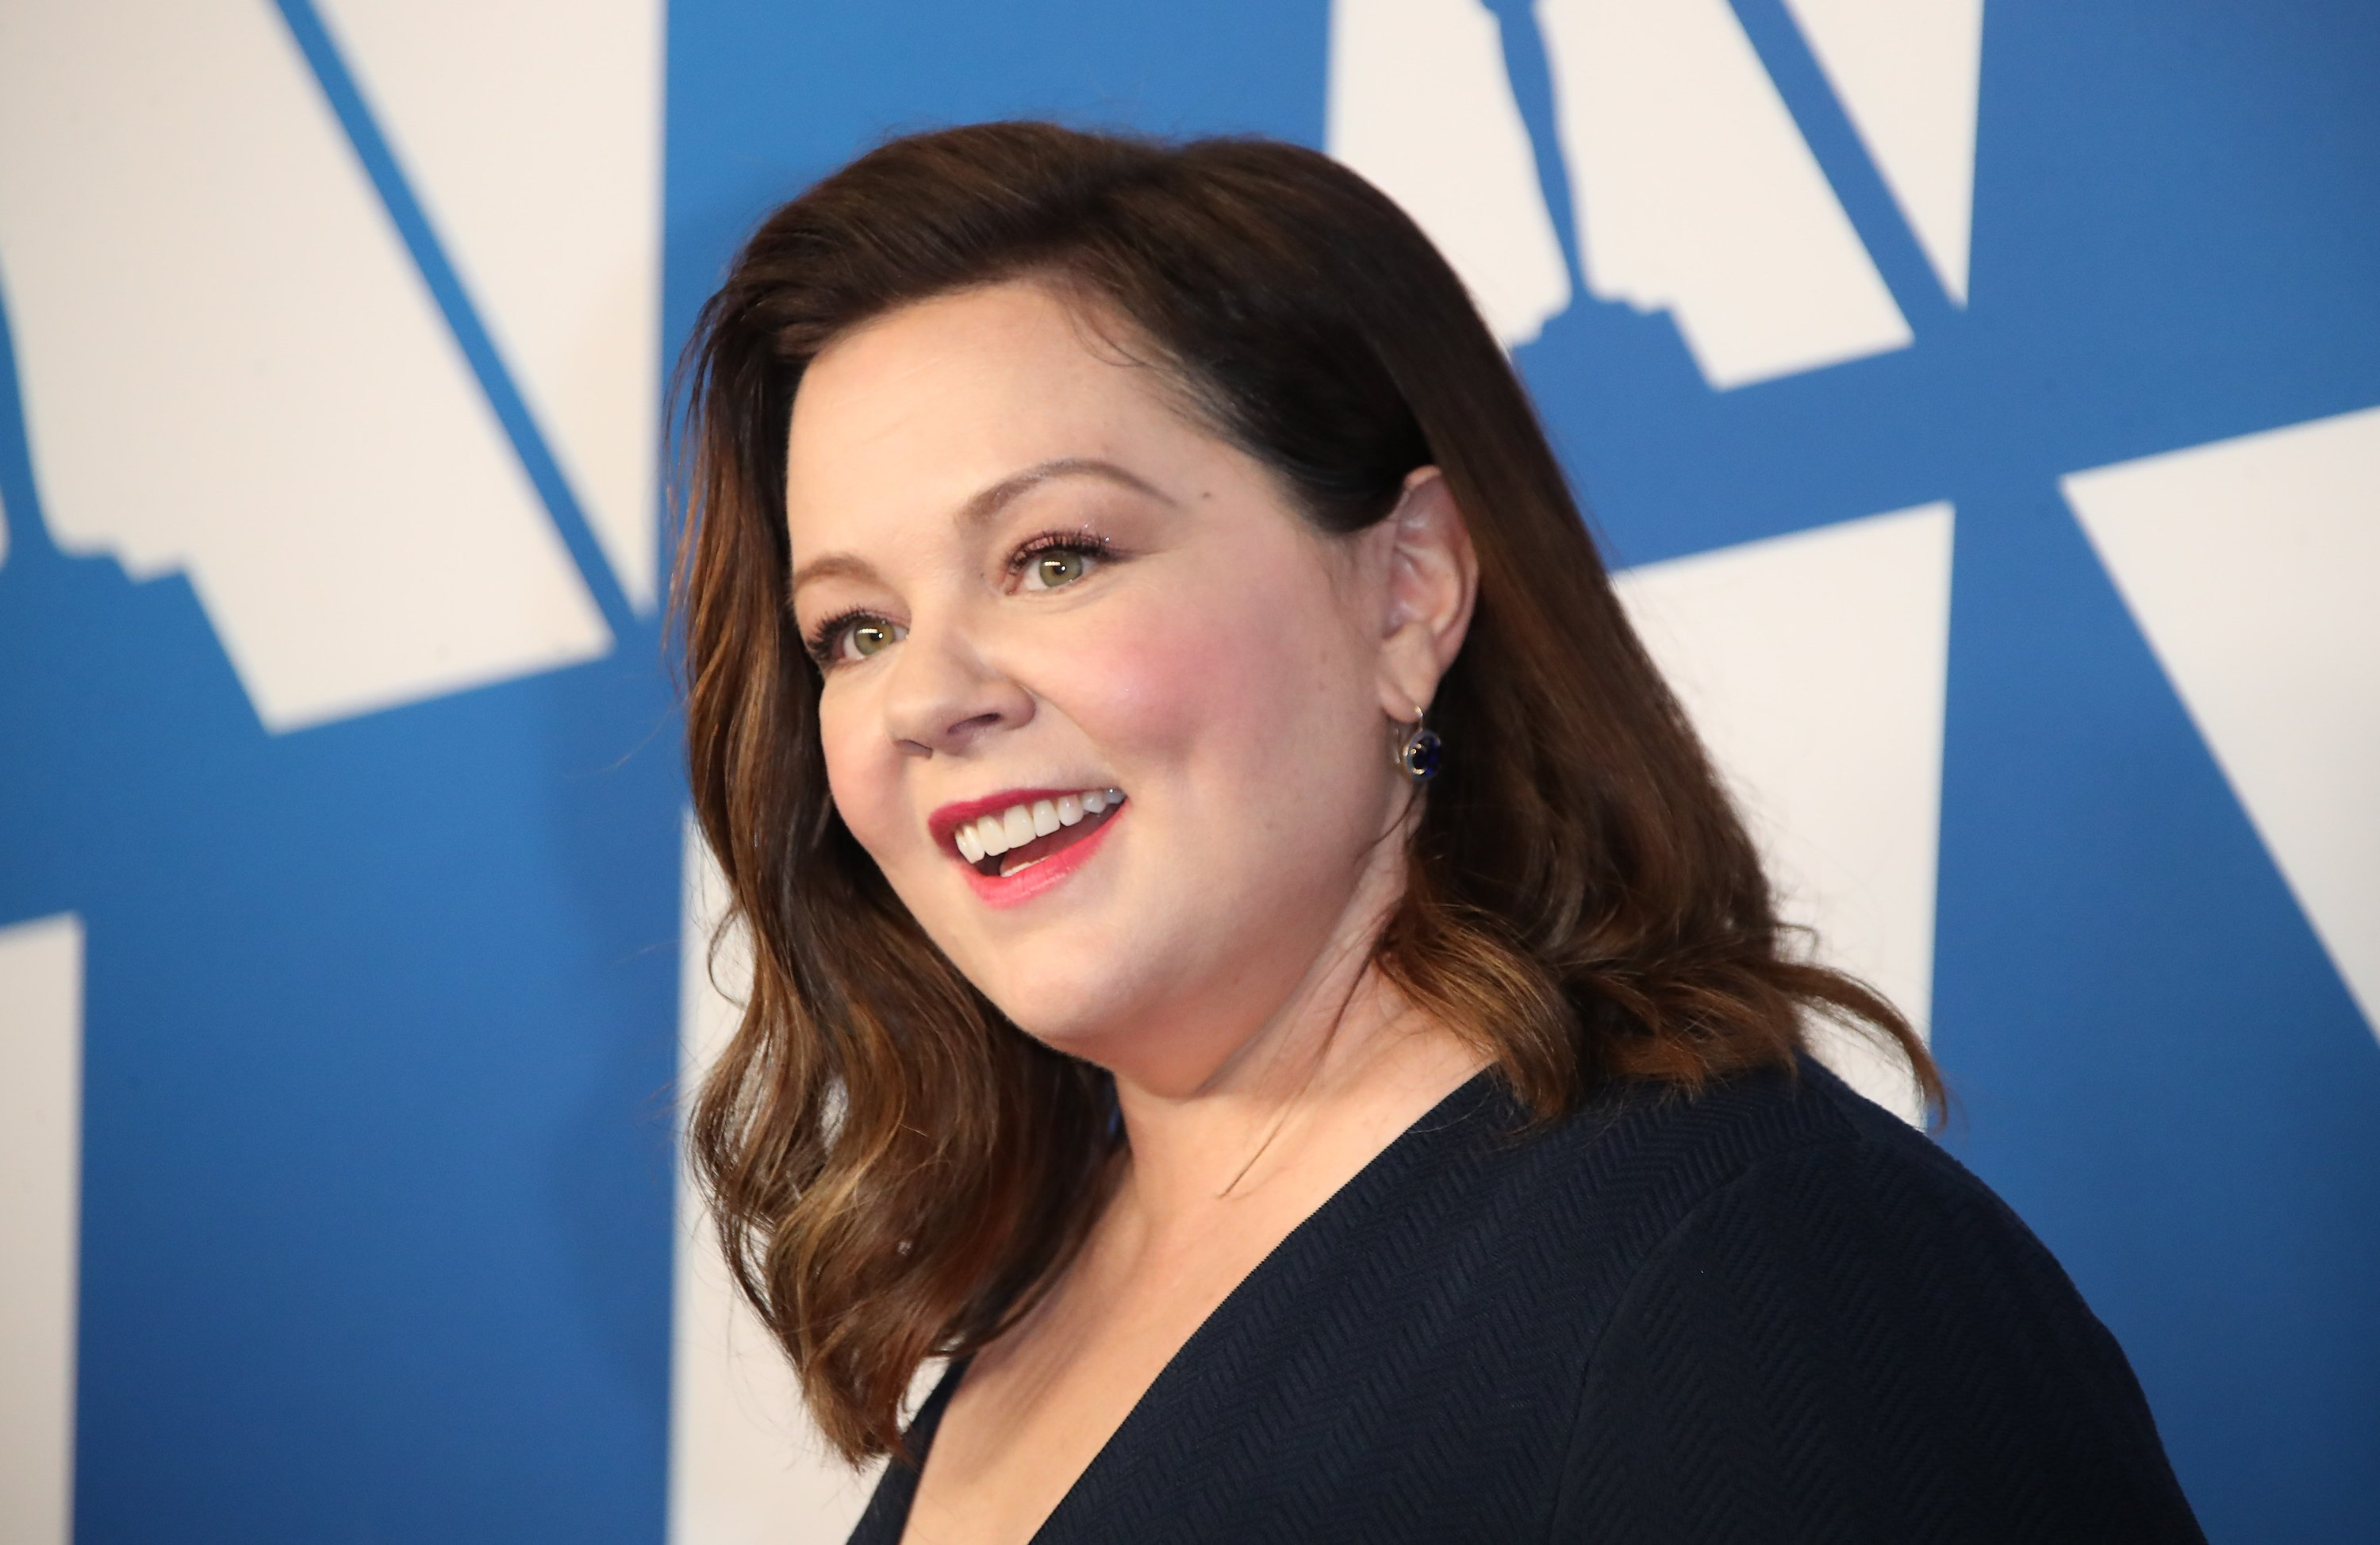 Melissa McCarthy at the 91st Oscars Nominees Luncheon on February 4, 2019 in Beverly Hills, California. | Photo: Getty Images